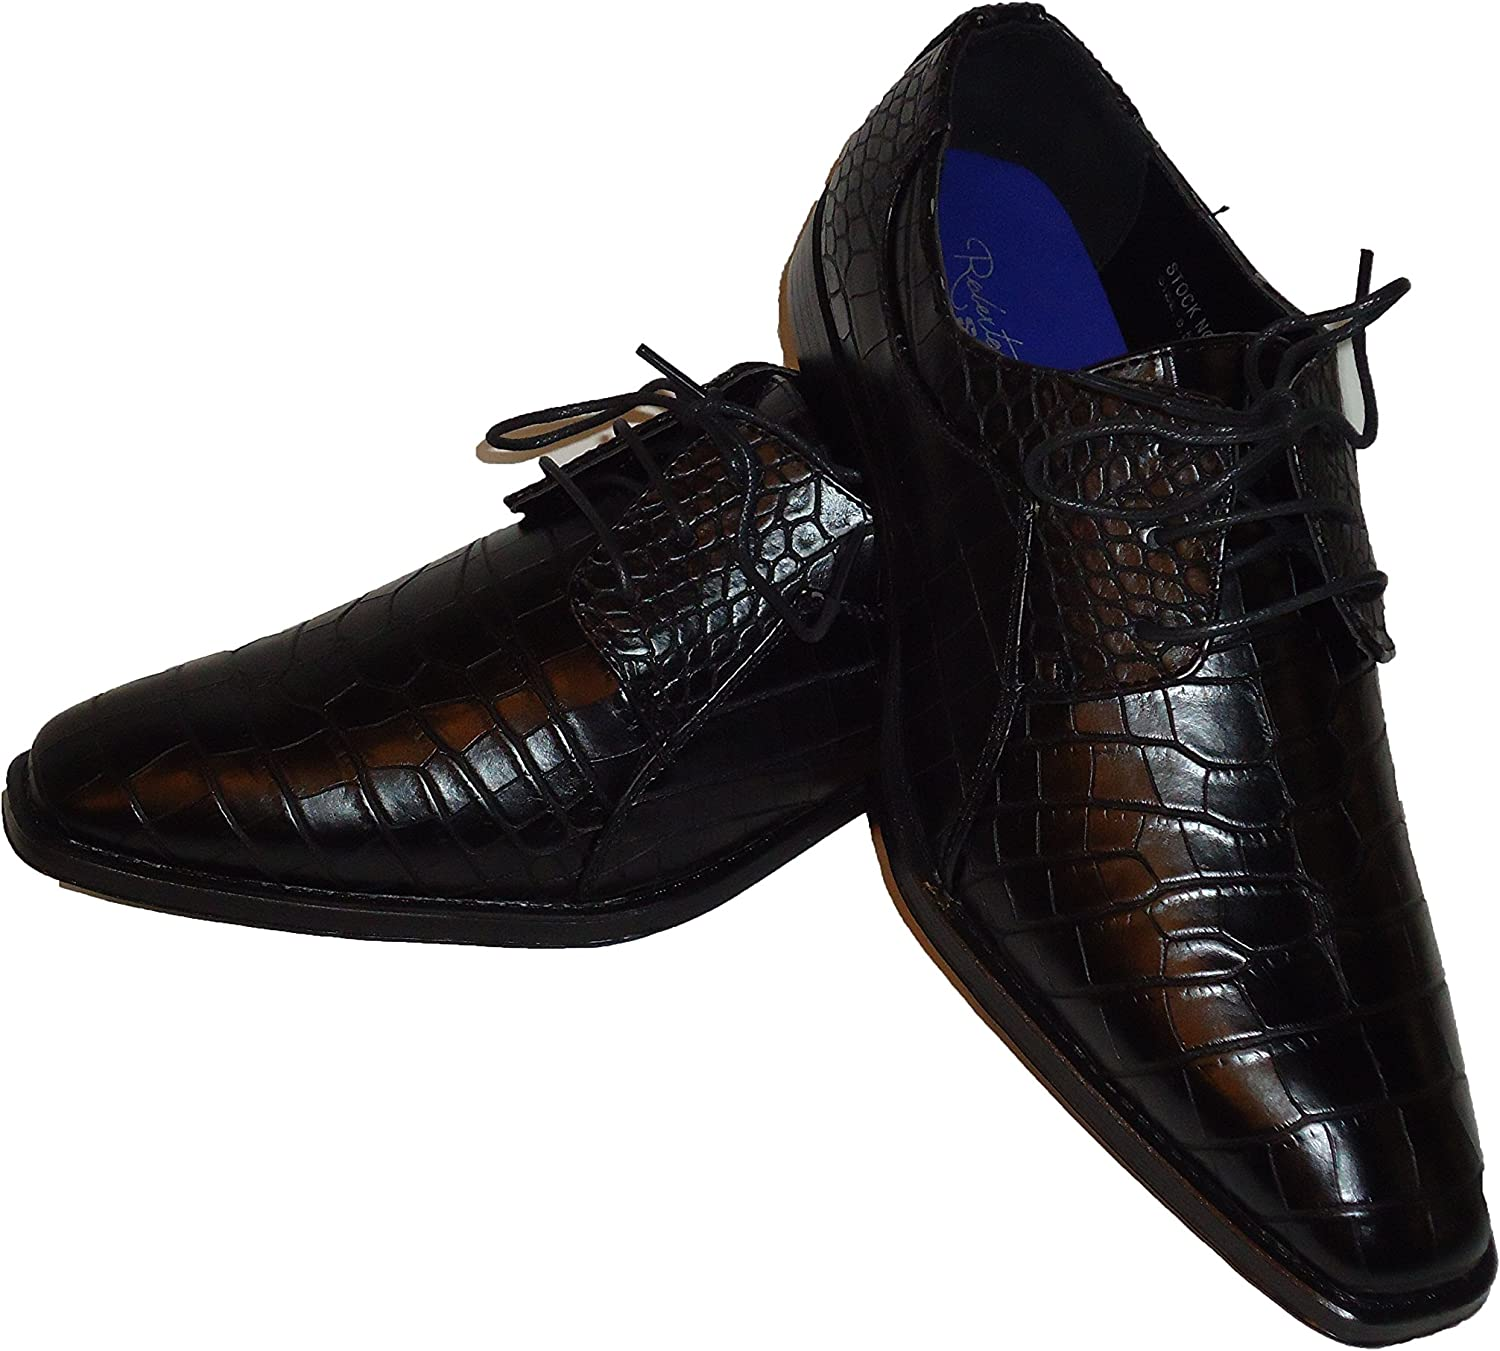 Expressions 4925 Mens Formal Oxford Dress Shoes Striped Satin Tuxedo by RC Roberto Chillini